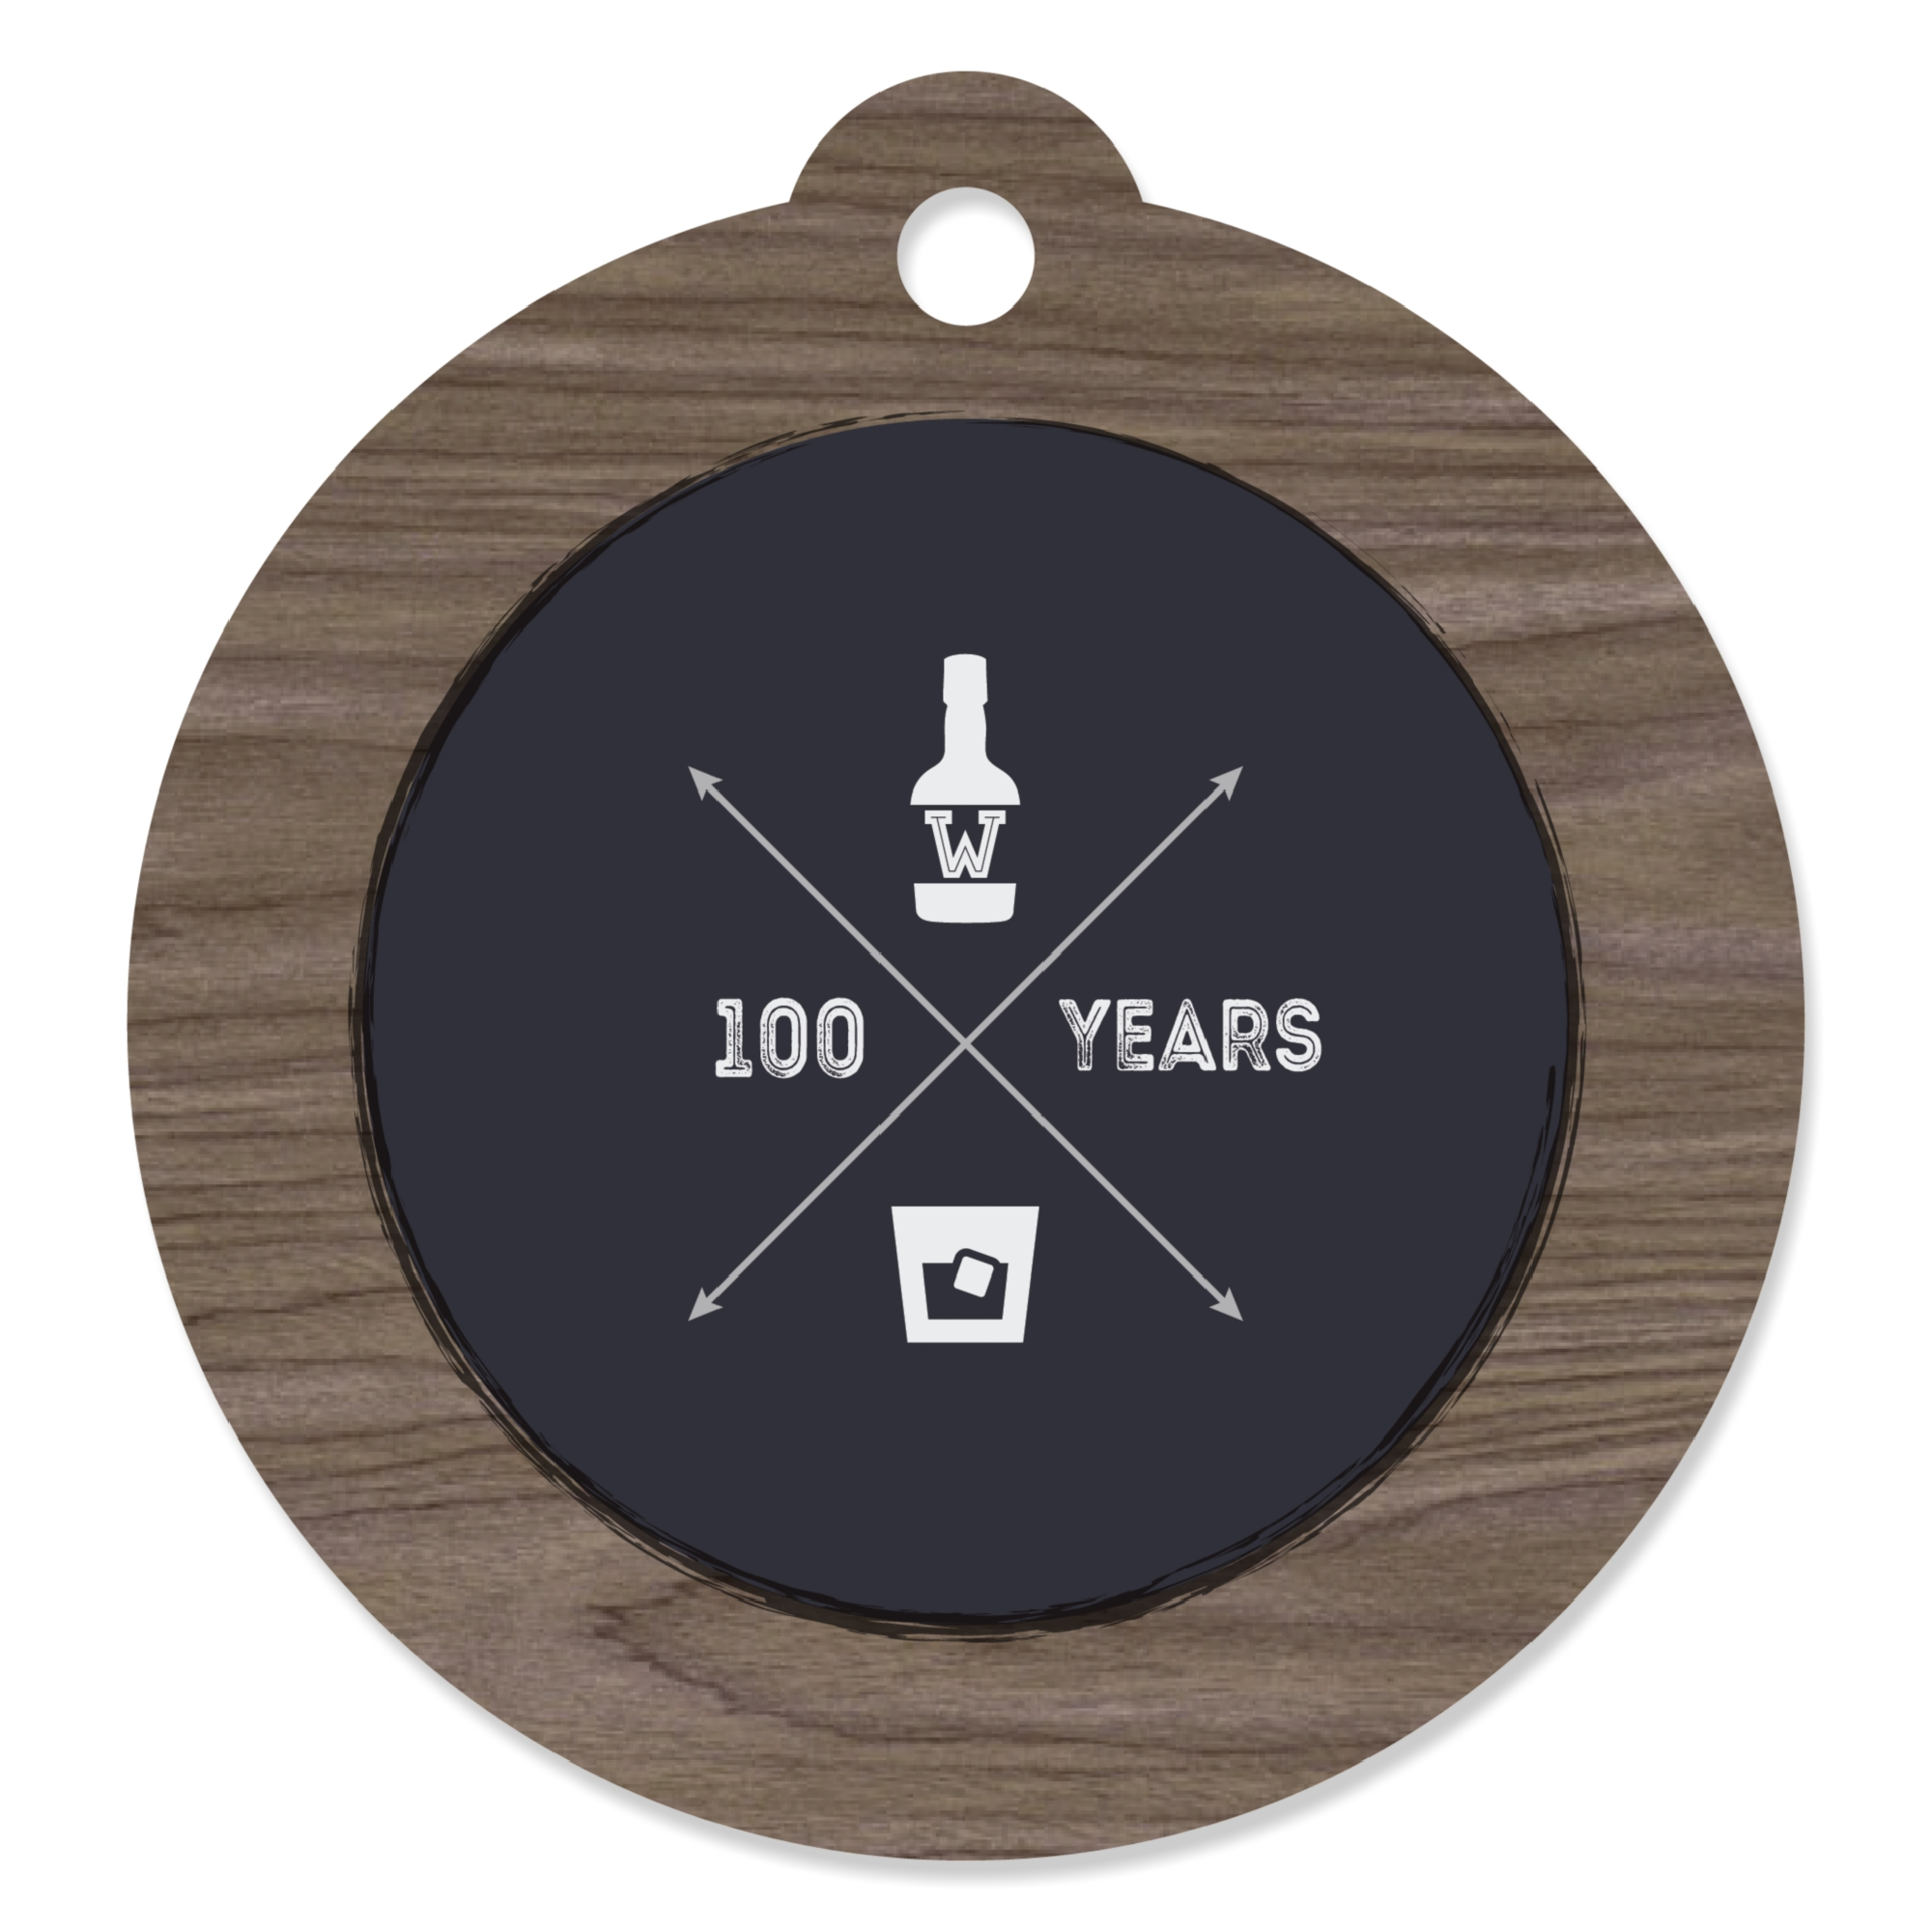 100th Milestone Birthday - Die-Cut Party Favor Tags (Set of 20)